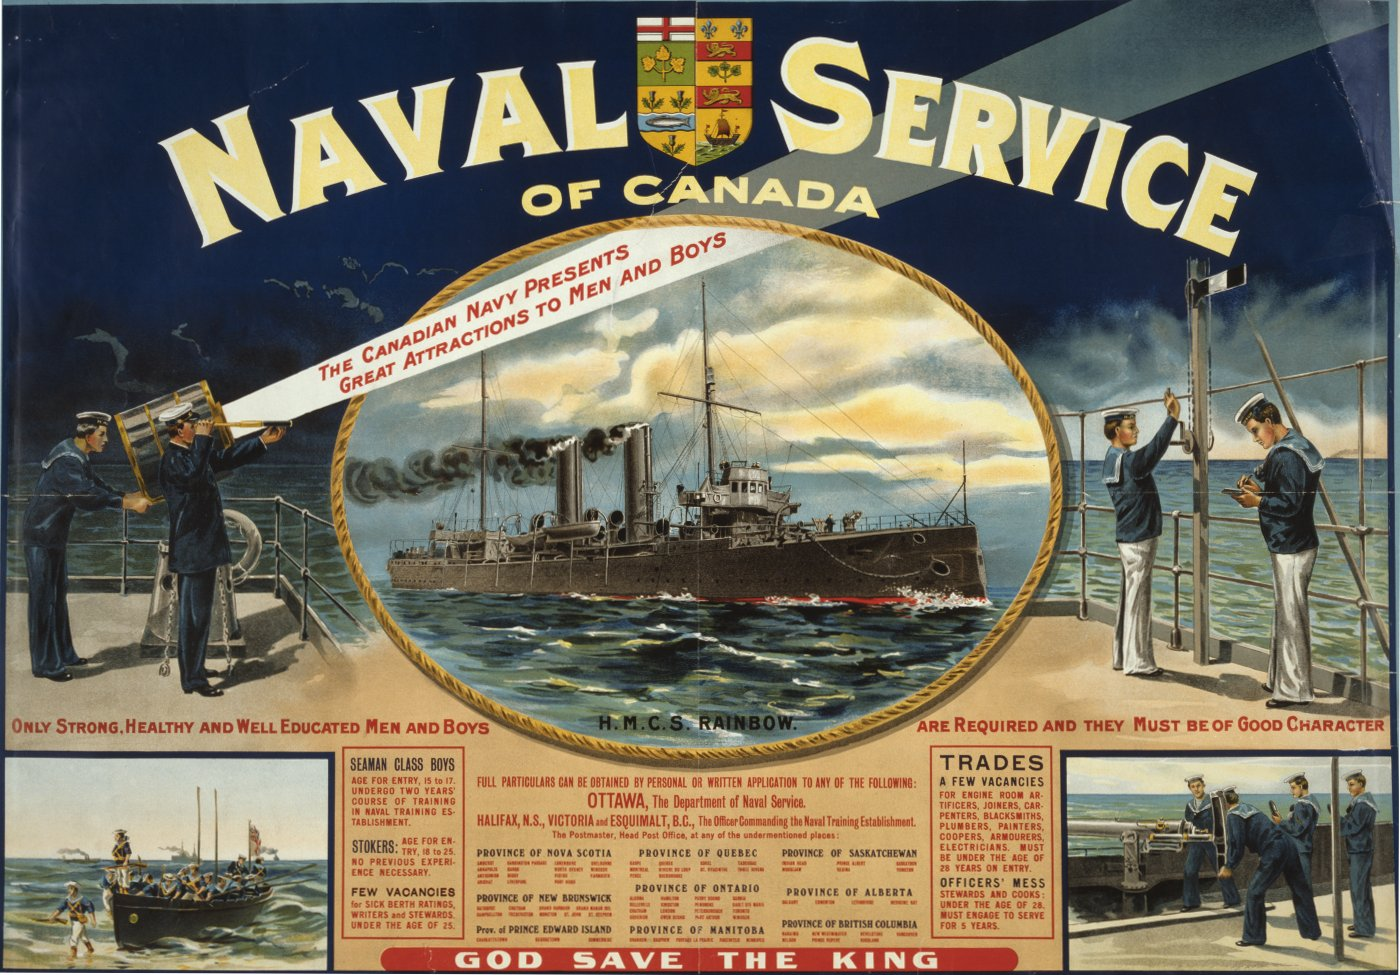 The Naval Service of Canada